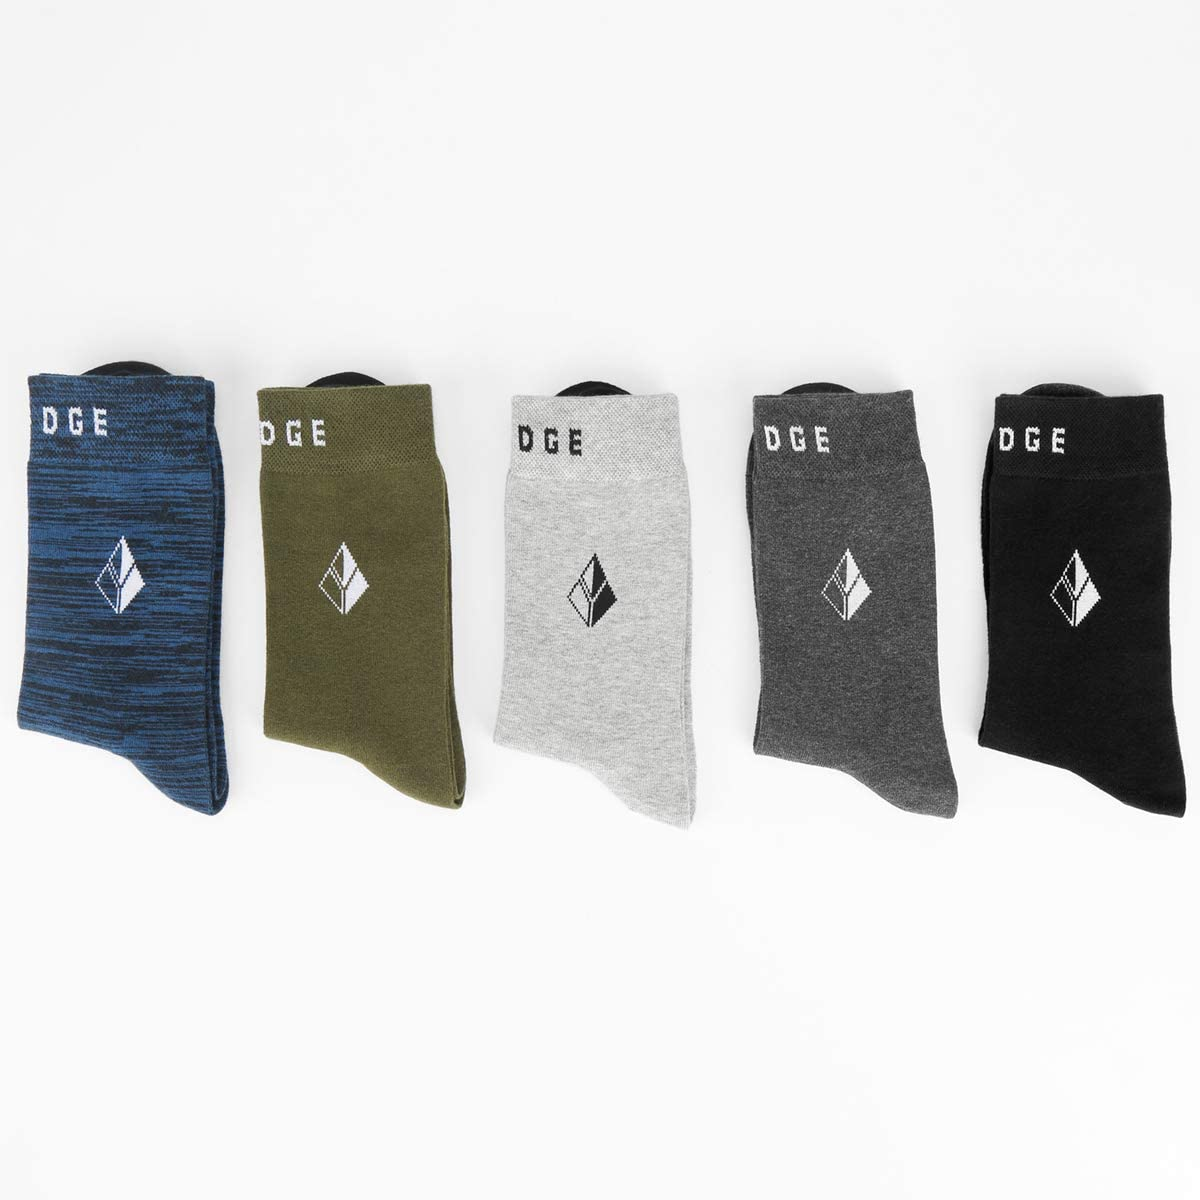 YUEDGE Mens Classic Breathable Comfortable Cotton Business Casual Mid Crew Calf Dress Socks for Men 5 Pairs Multipack